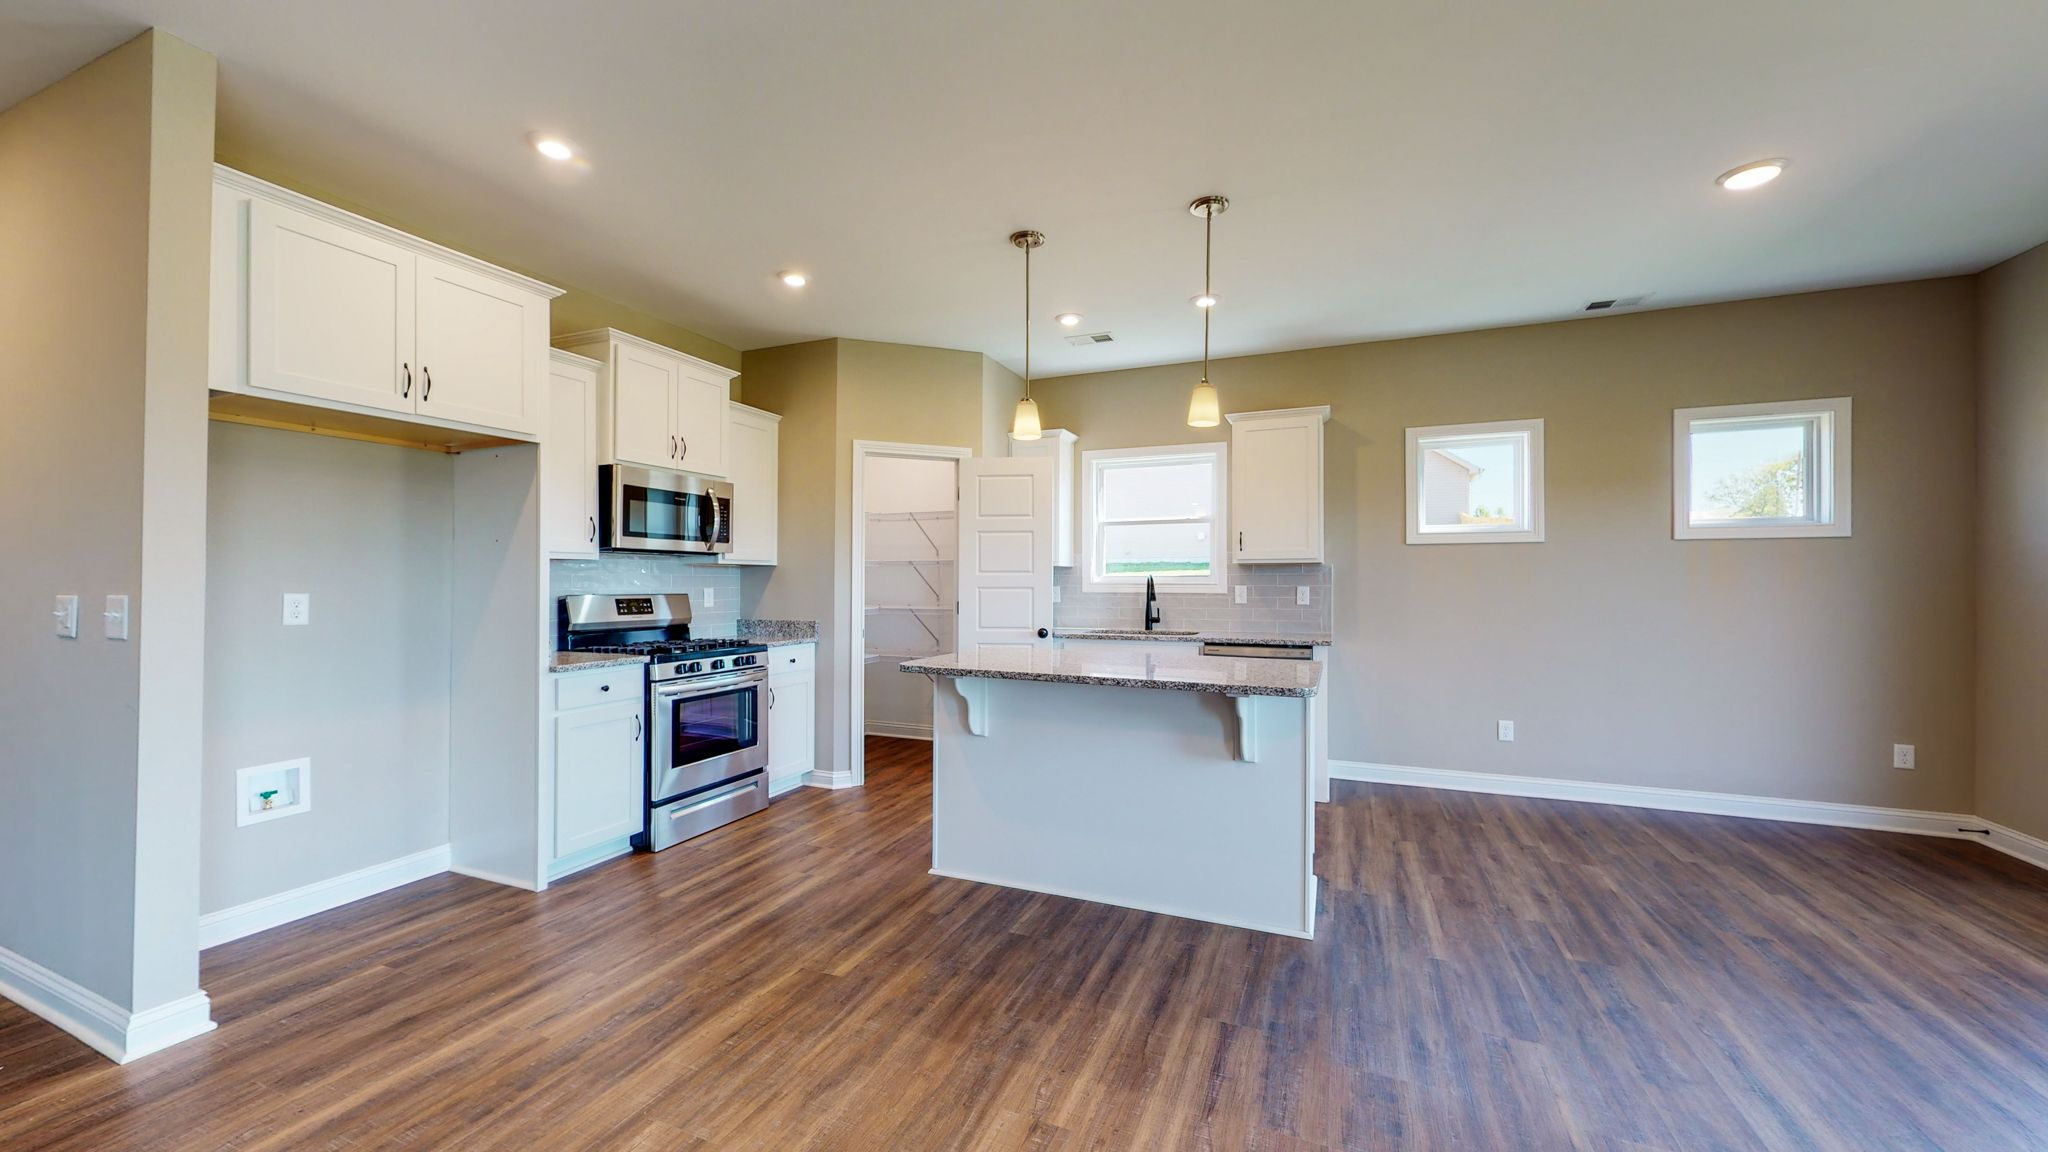 Kitchen featured in The Martha - 3rd Car By James Monroe Homes in Lexington, KY